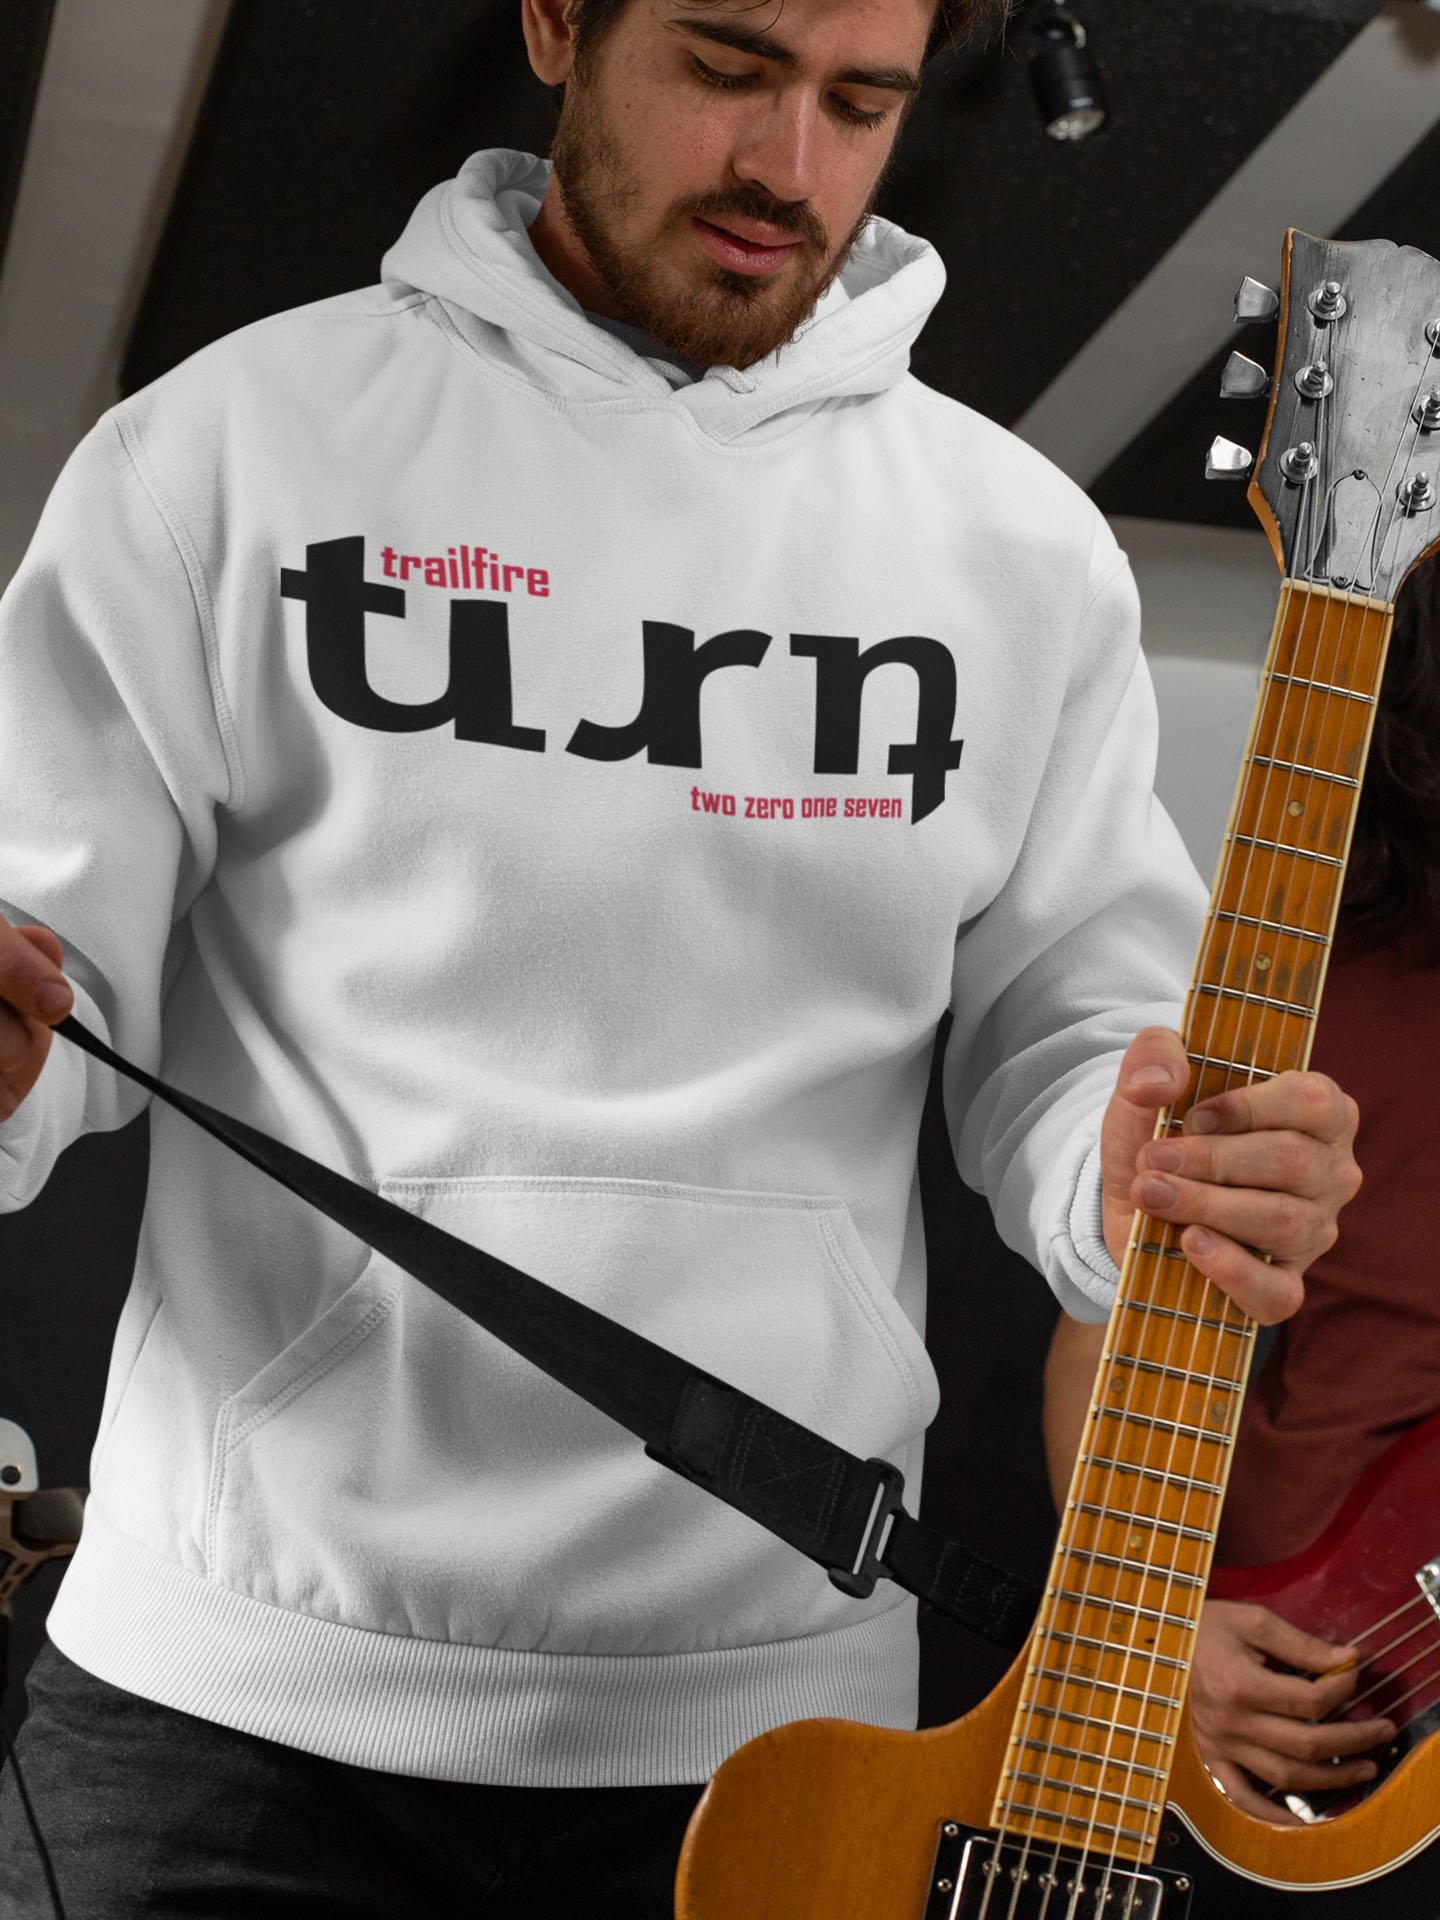 Spredshirt-Prints-Trailfire_0028_mockup-of-a-guitarist-wearing-a-pullover-hoodie-33337